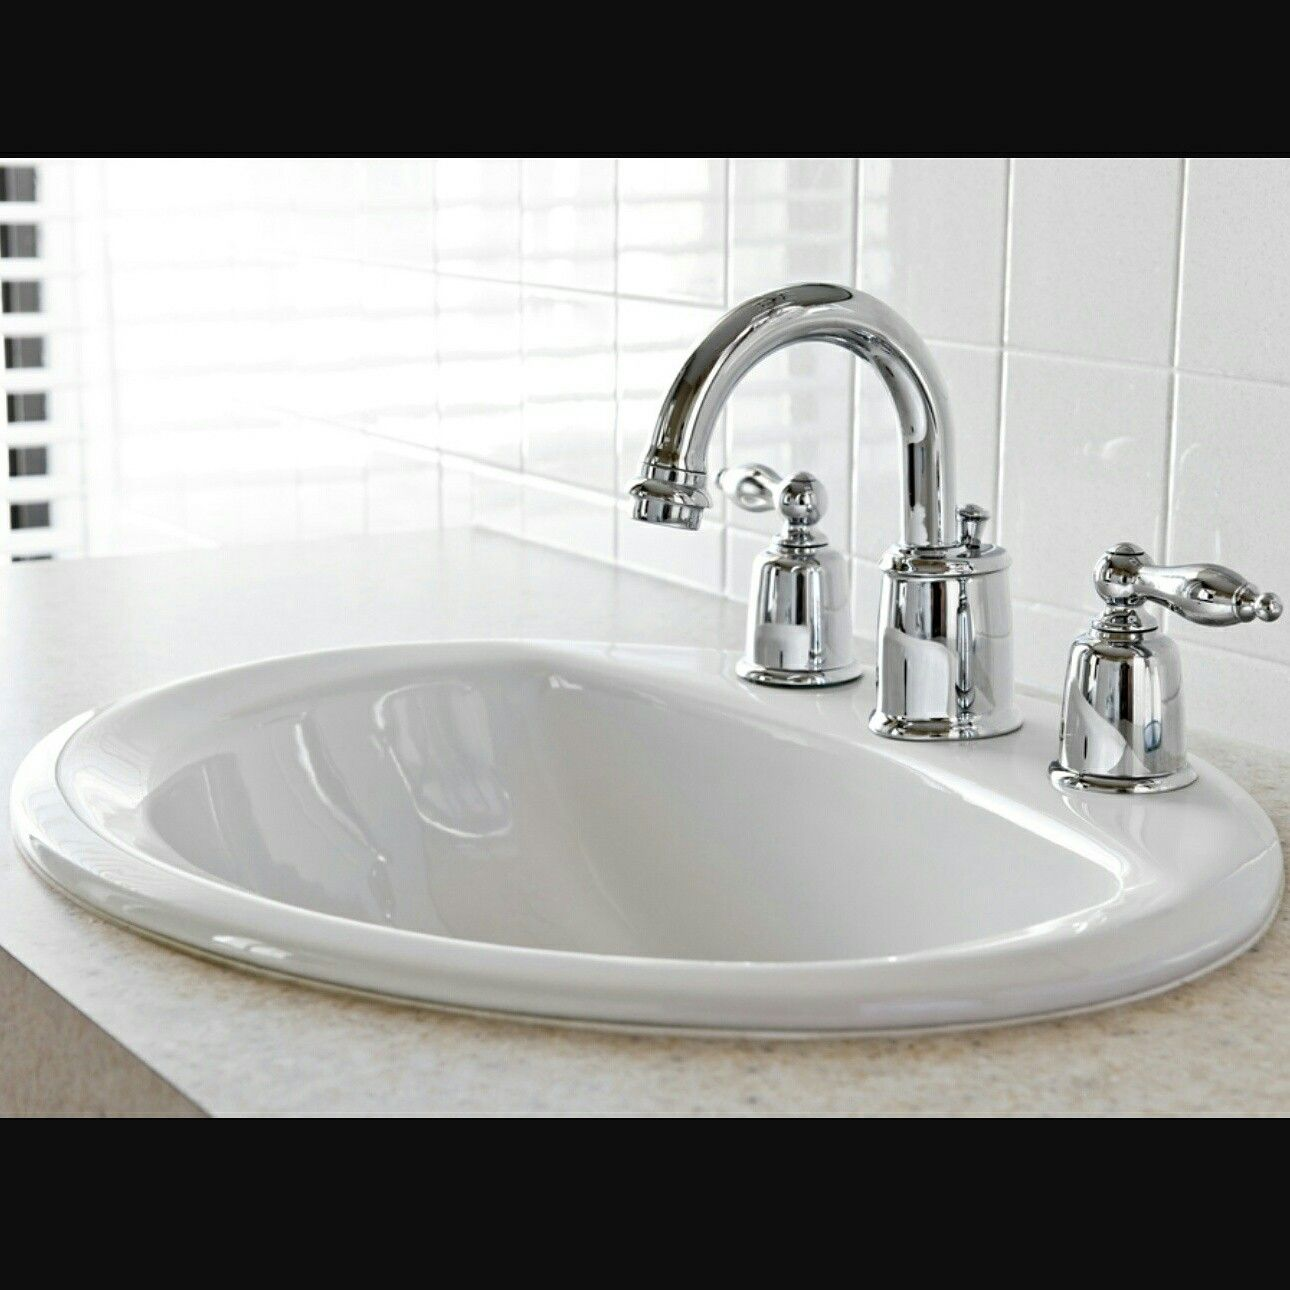 Bathroom Sink Plugged Or Draining Slow We Can Fix It Call Us Today In The Edmonton Pro Plumbing